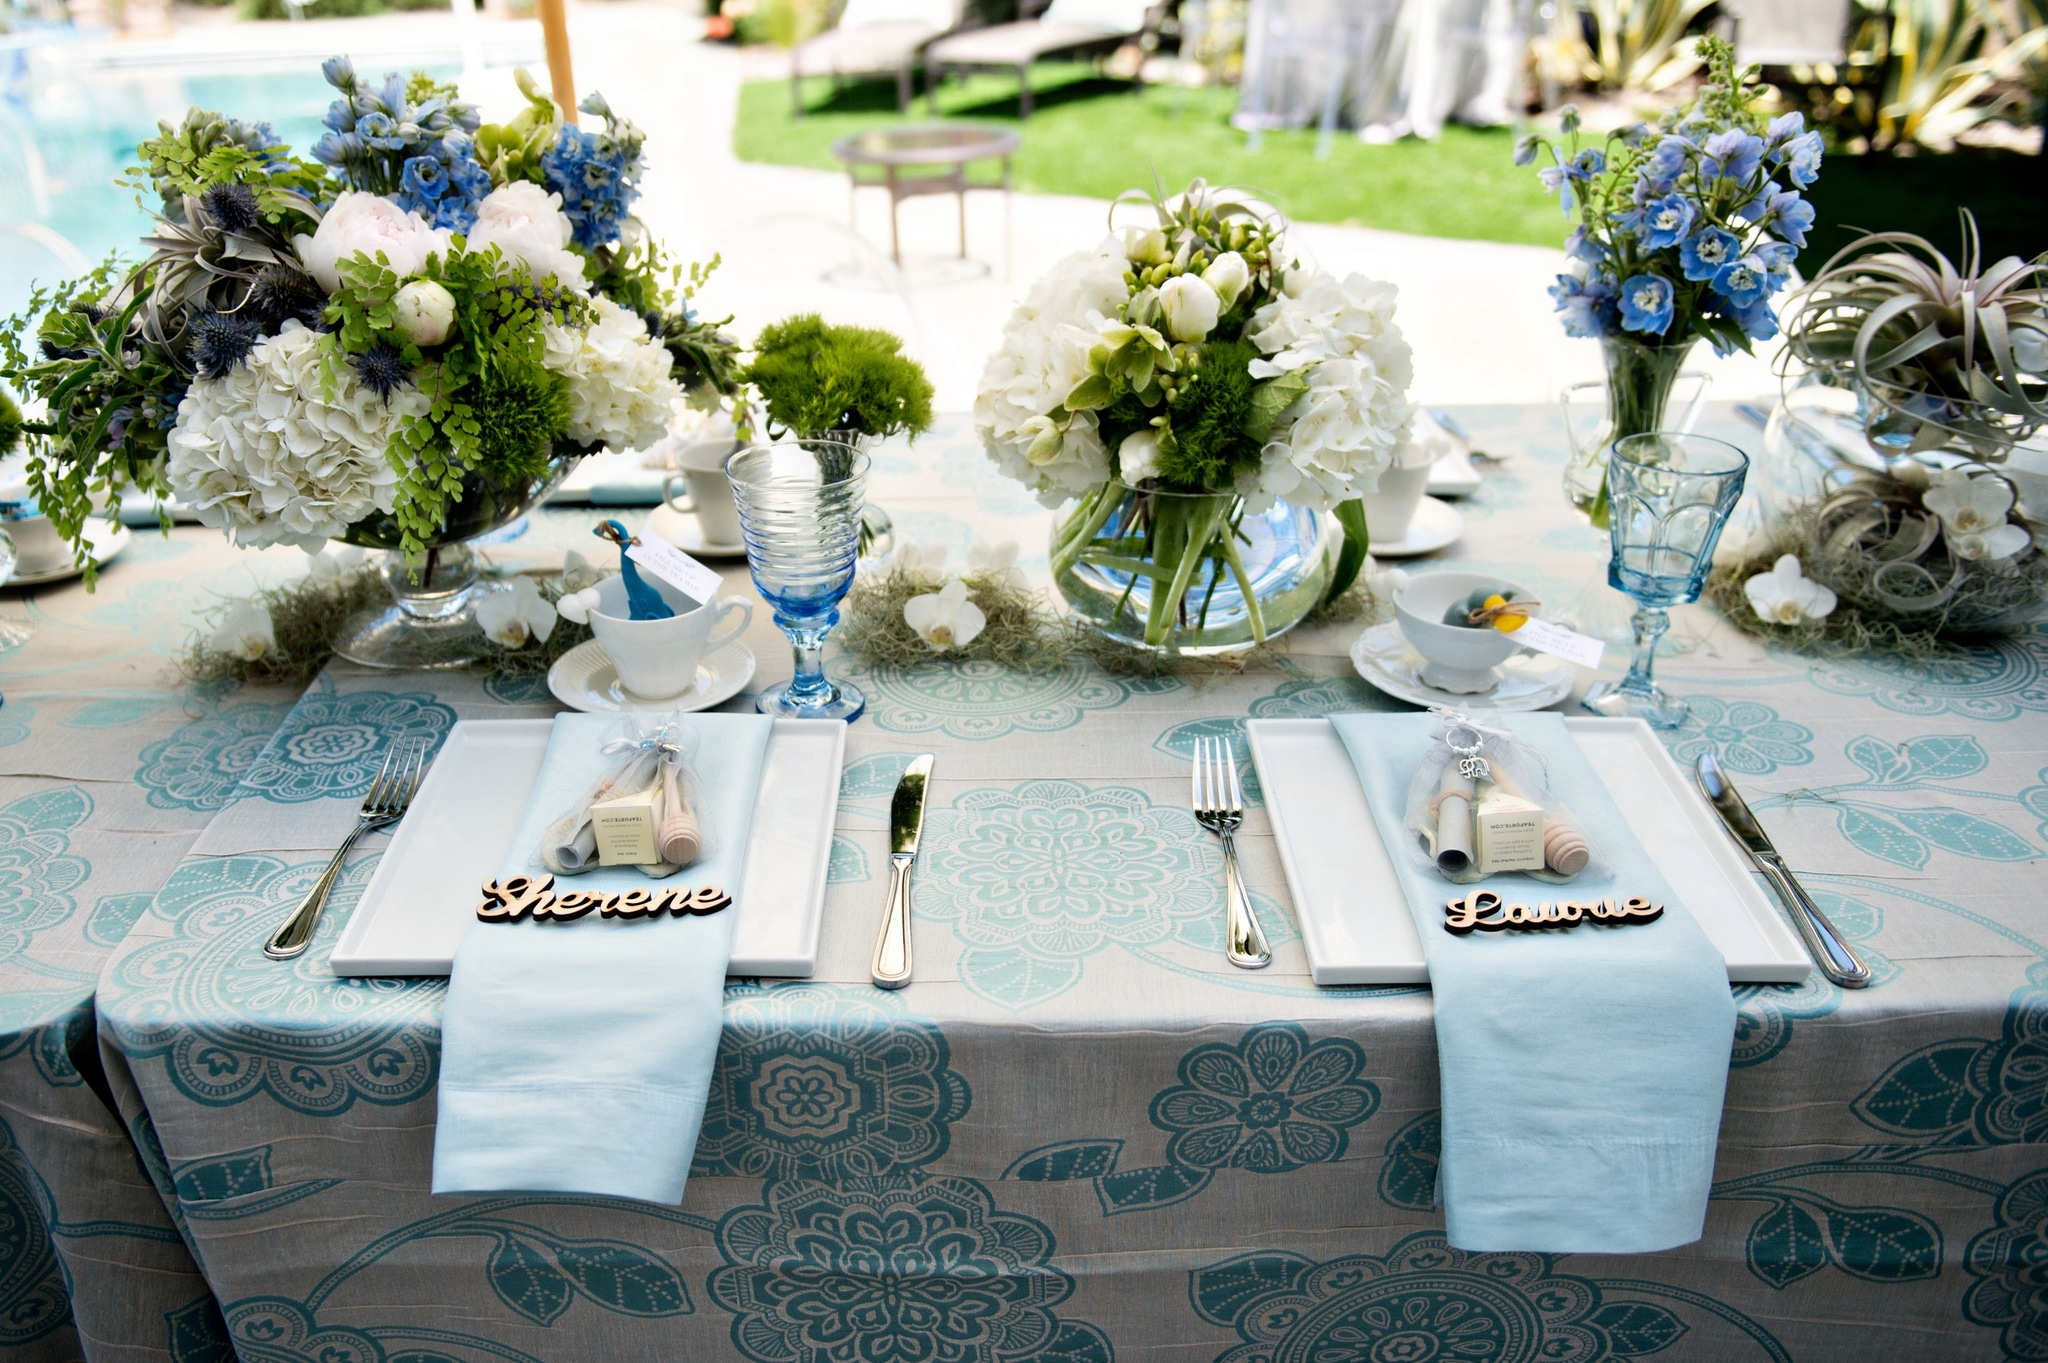 Blue and white place seating